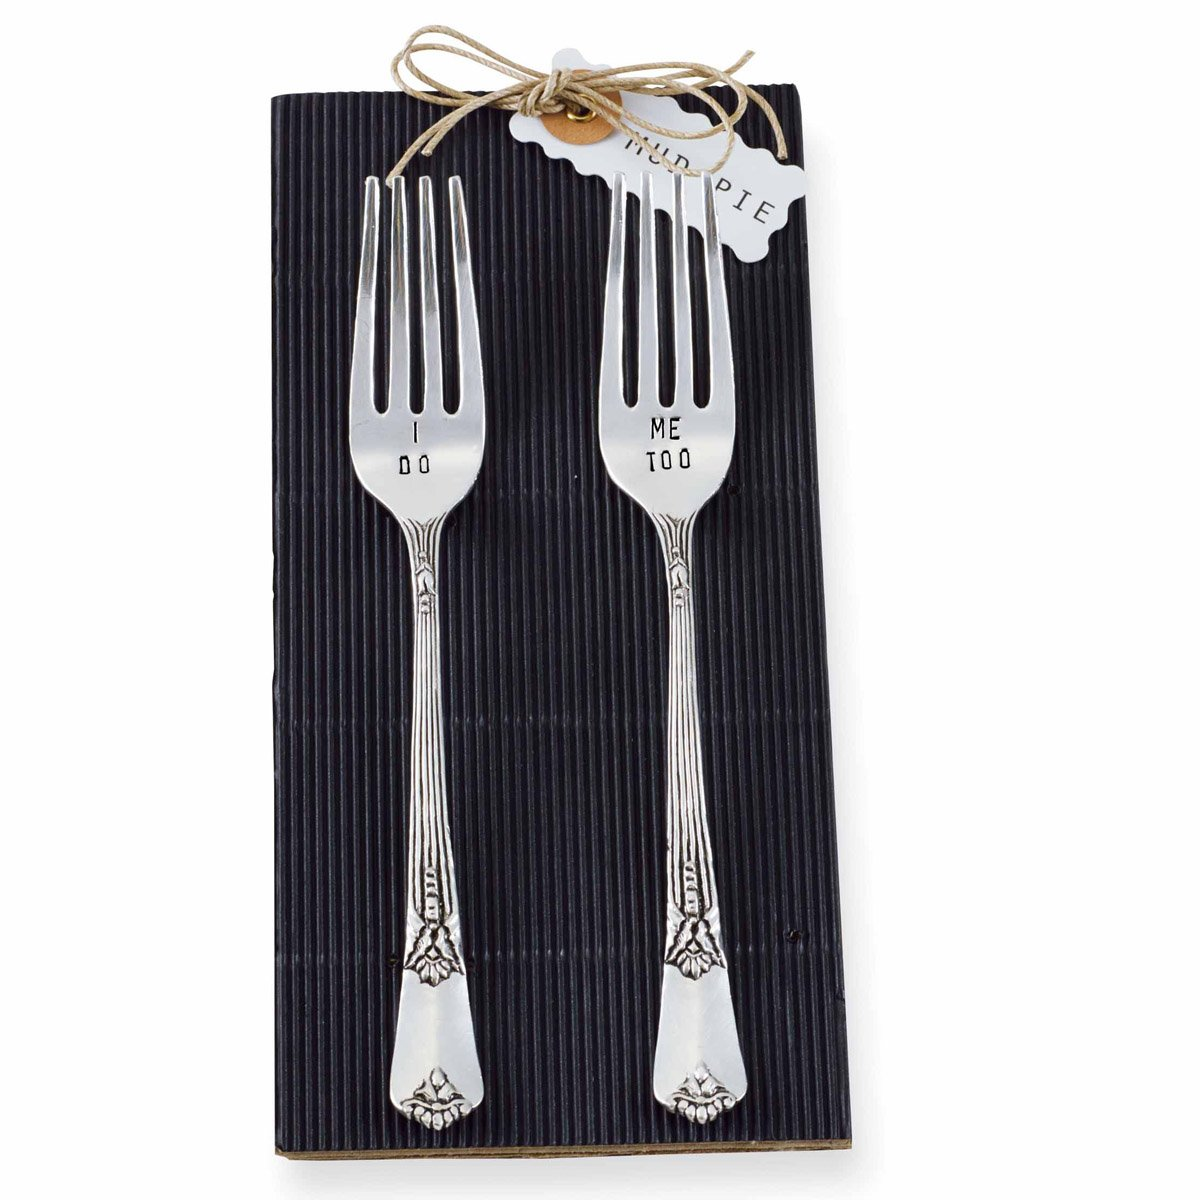 Mud Pie 4041002 Wedding Fork, Set of 2